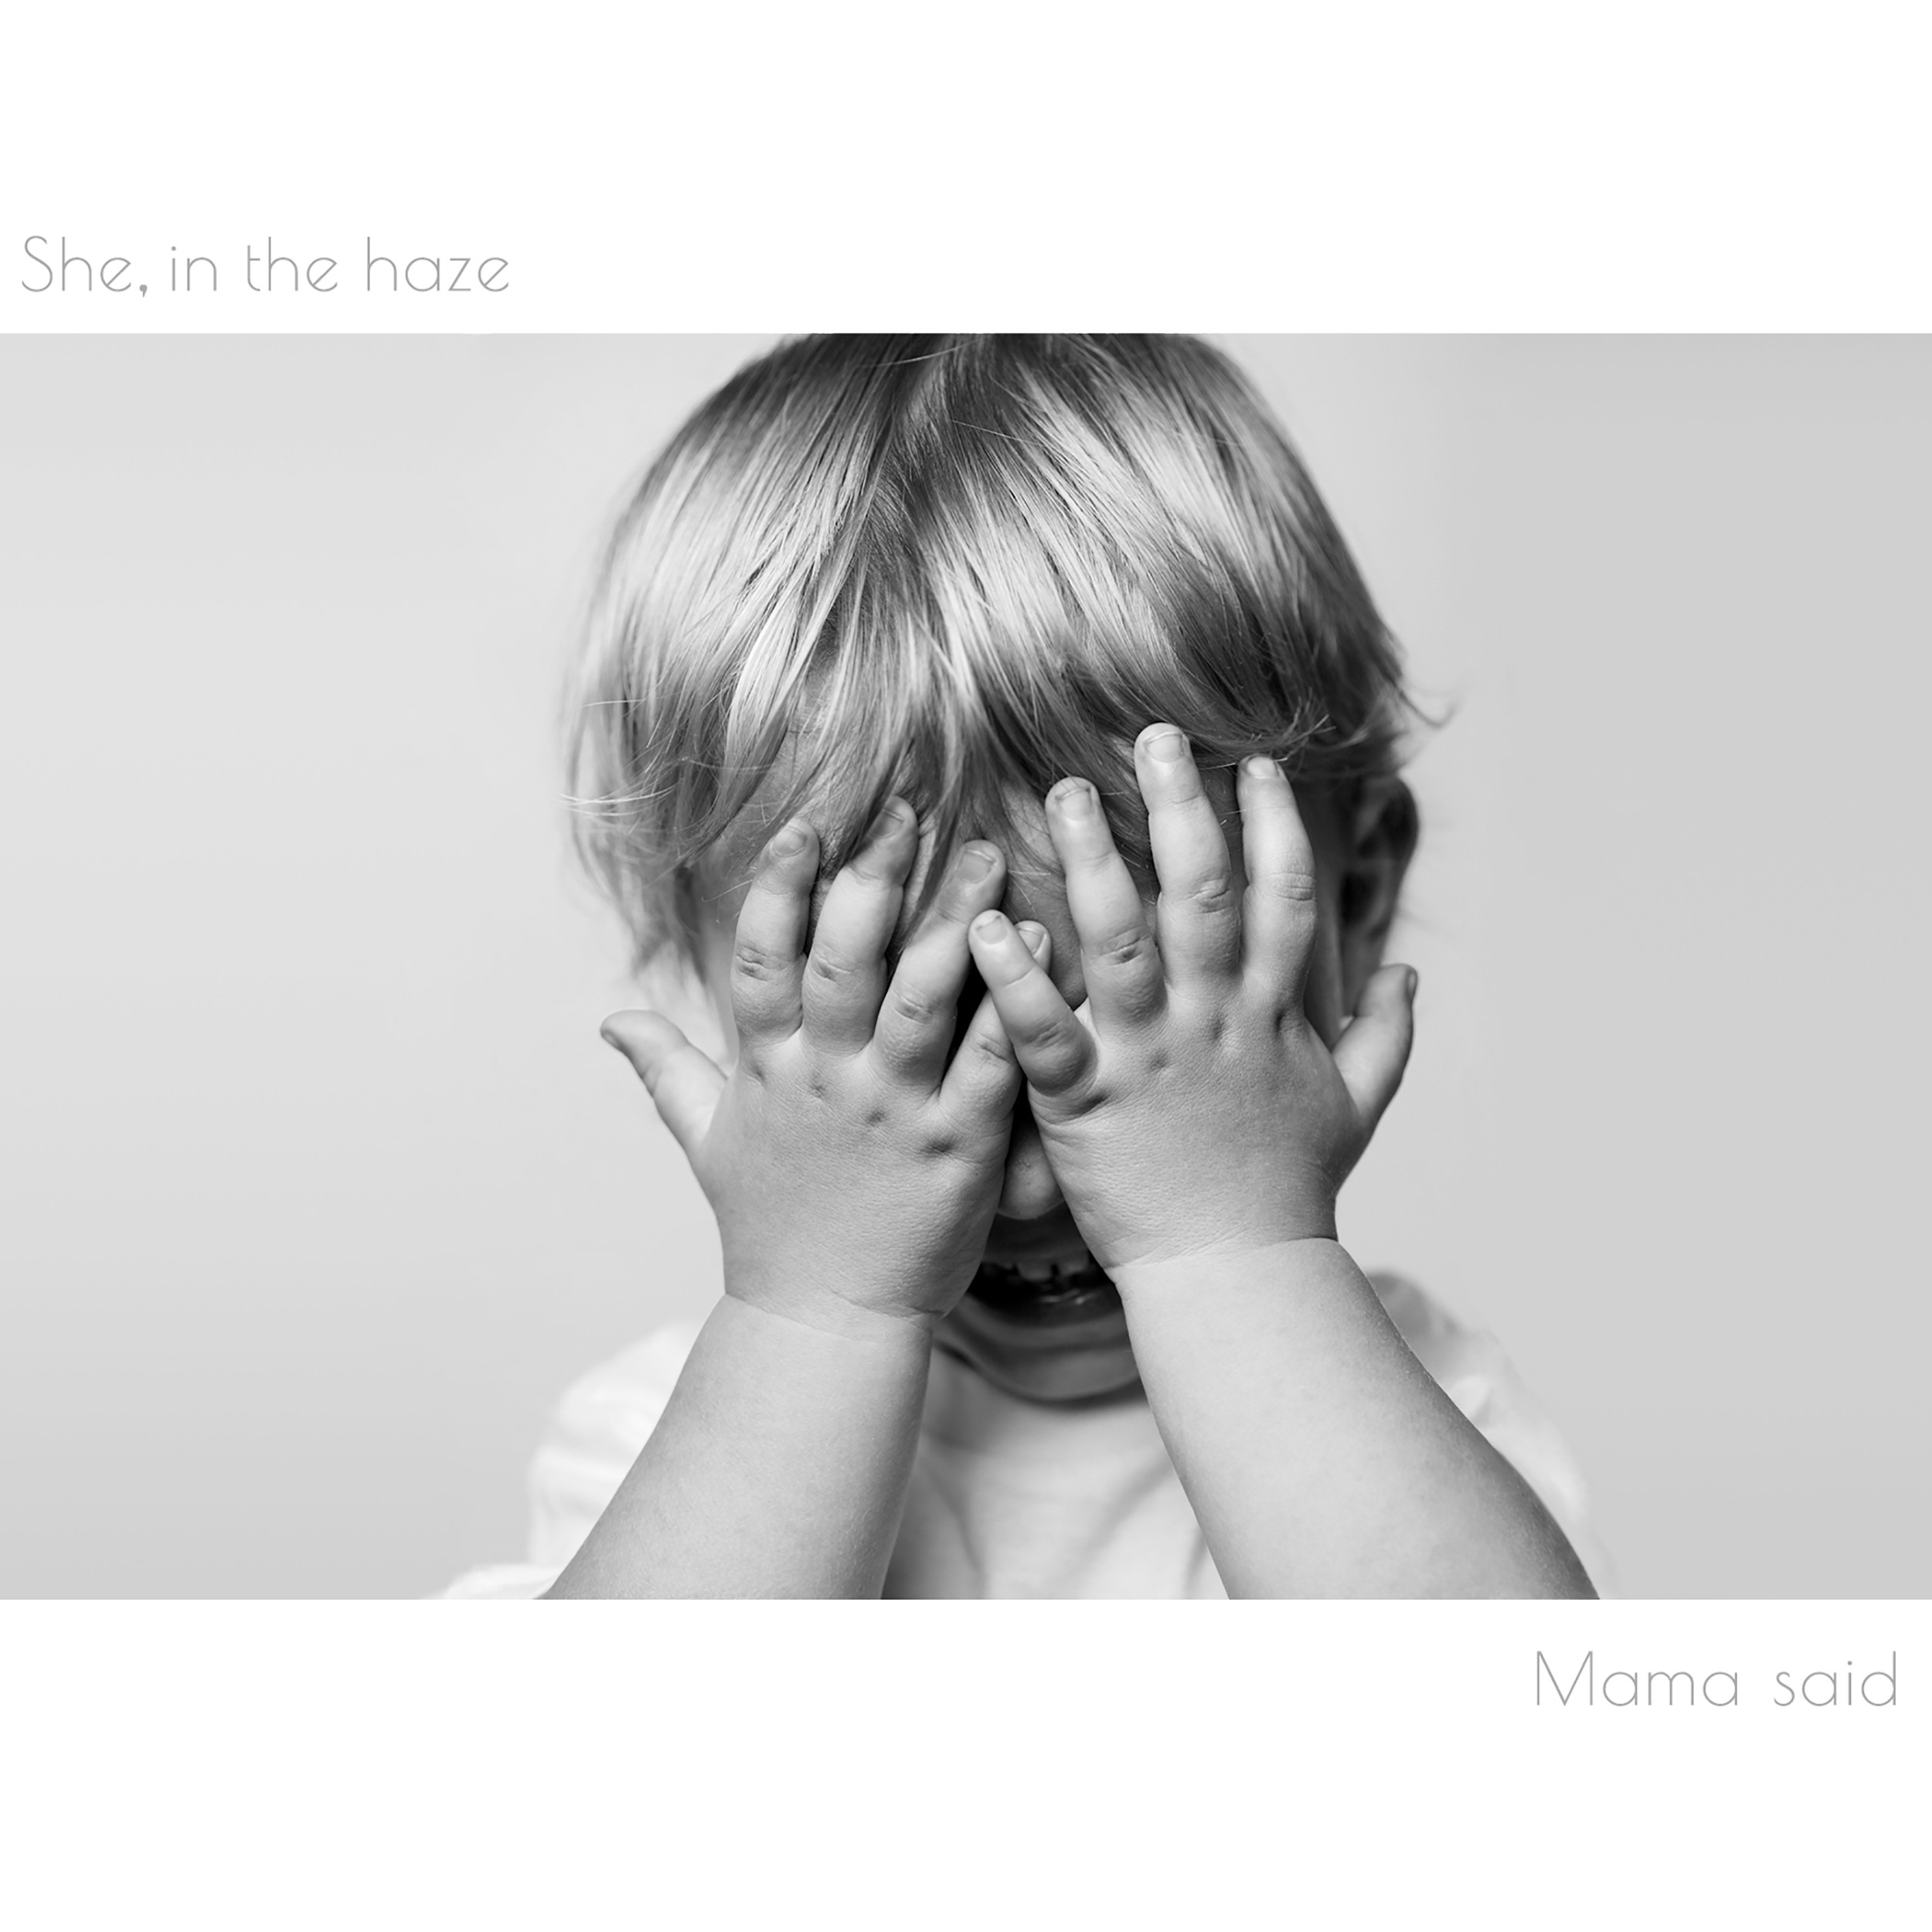 Image of Mama said / She, in the haze